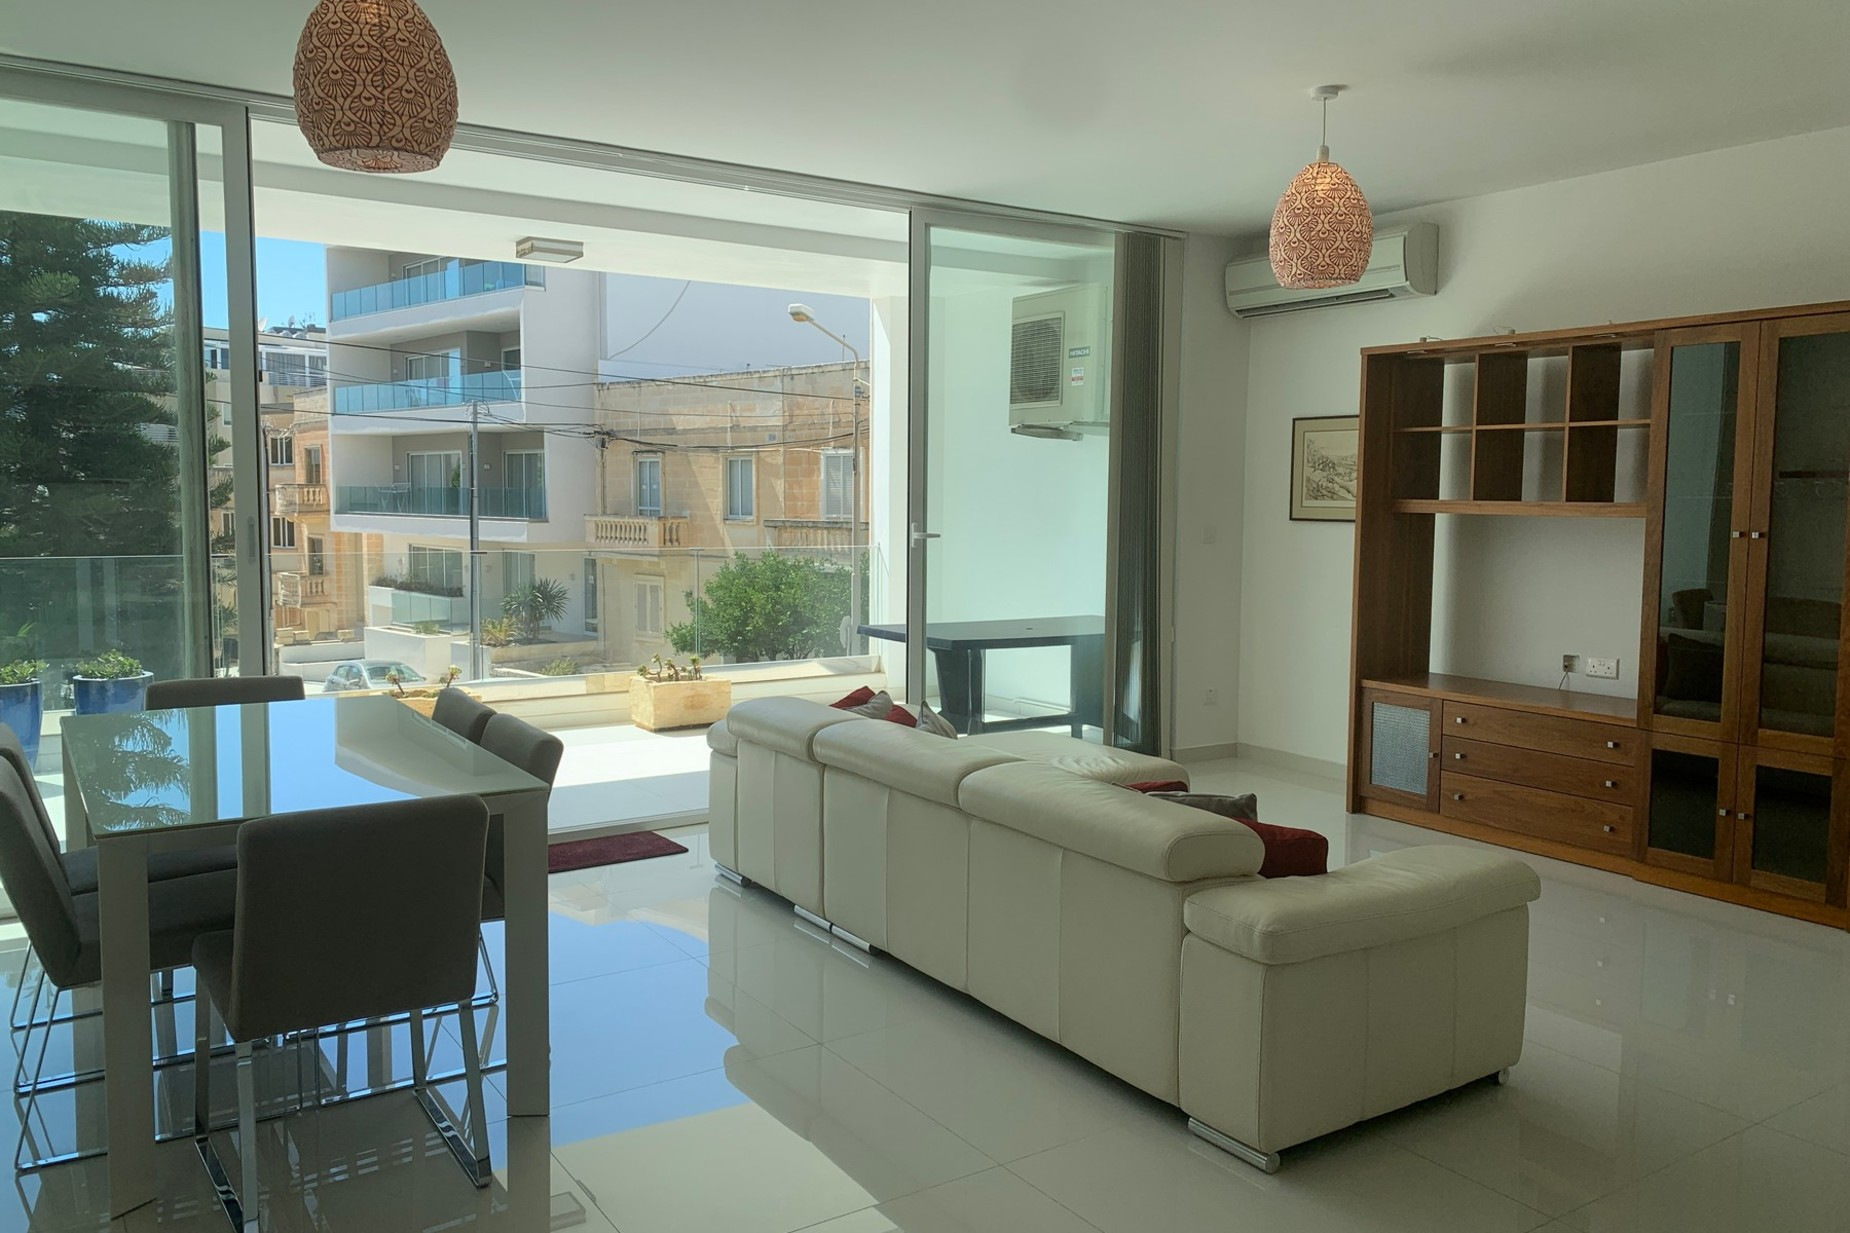 3 bed Apartment For Rent in Swieqi, Swieqi - thumb 3